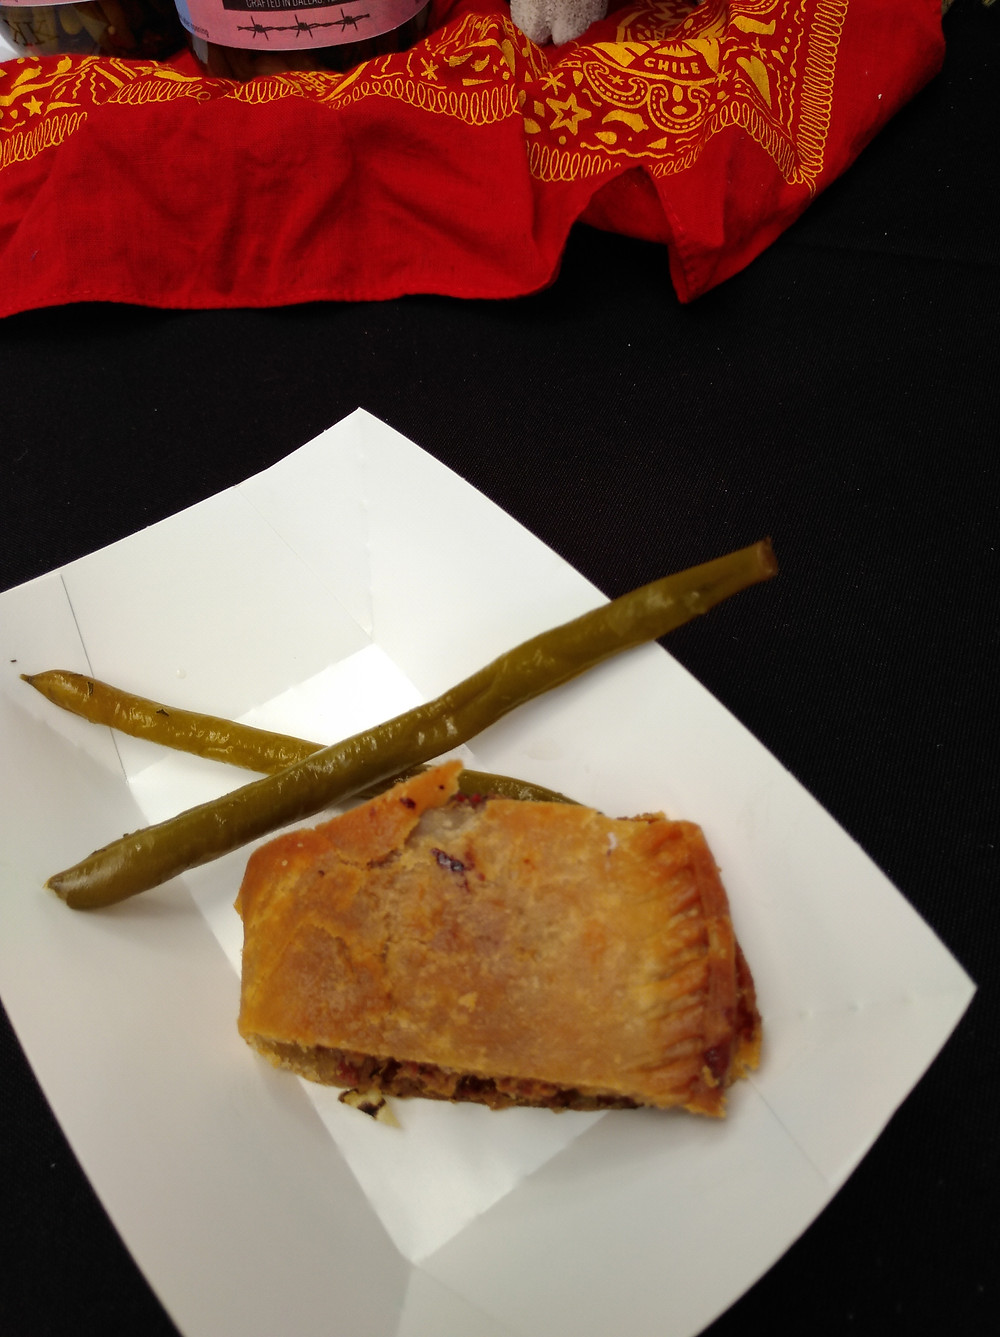 I was told that this is not an empanada, it's a meat pie.